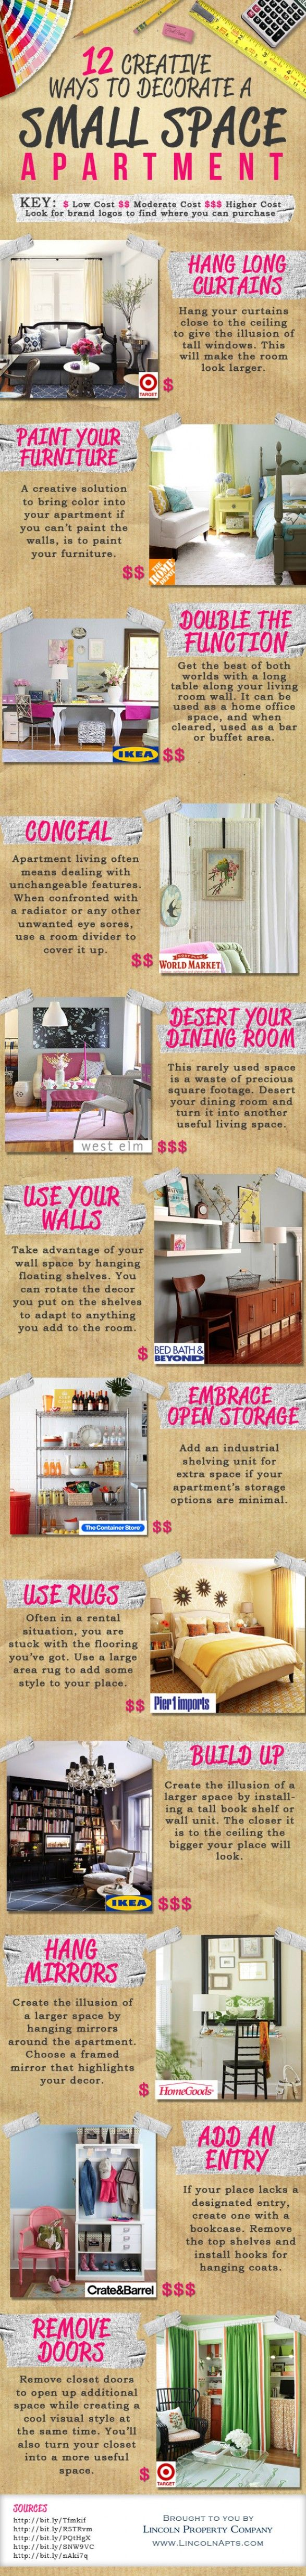 Great tips for dorms or apartments! 12 Creative Ways to Decorate a Small Space!